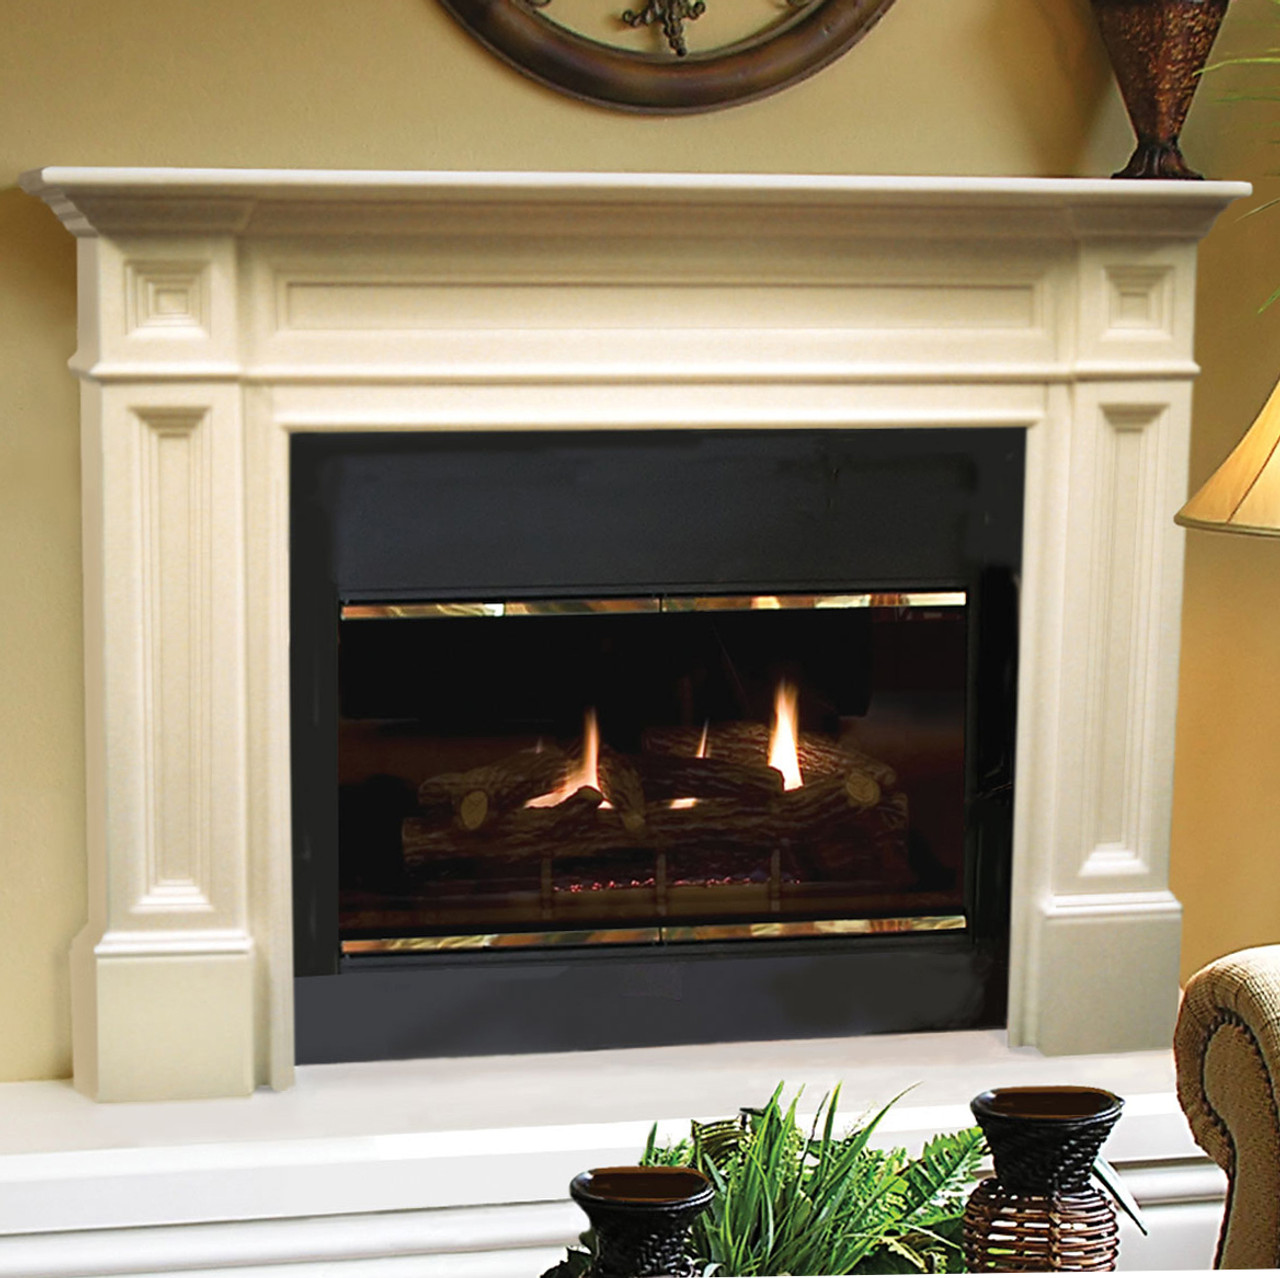 """The Classique Fireplace Mantel Surround, 56"""" (140-56), Life Style View"""